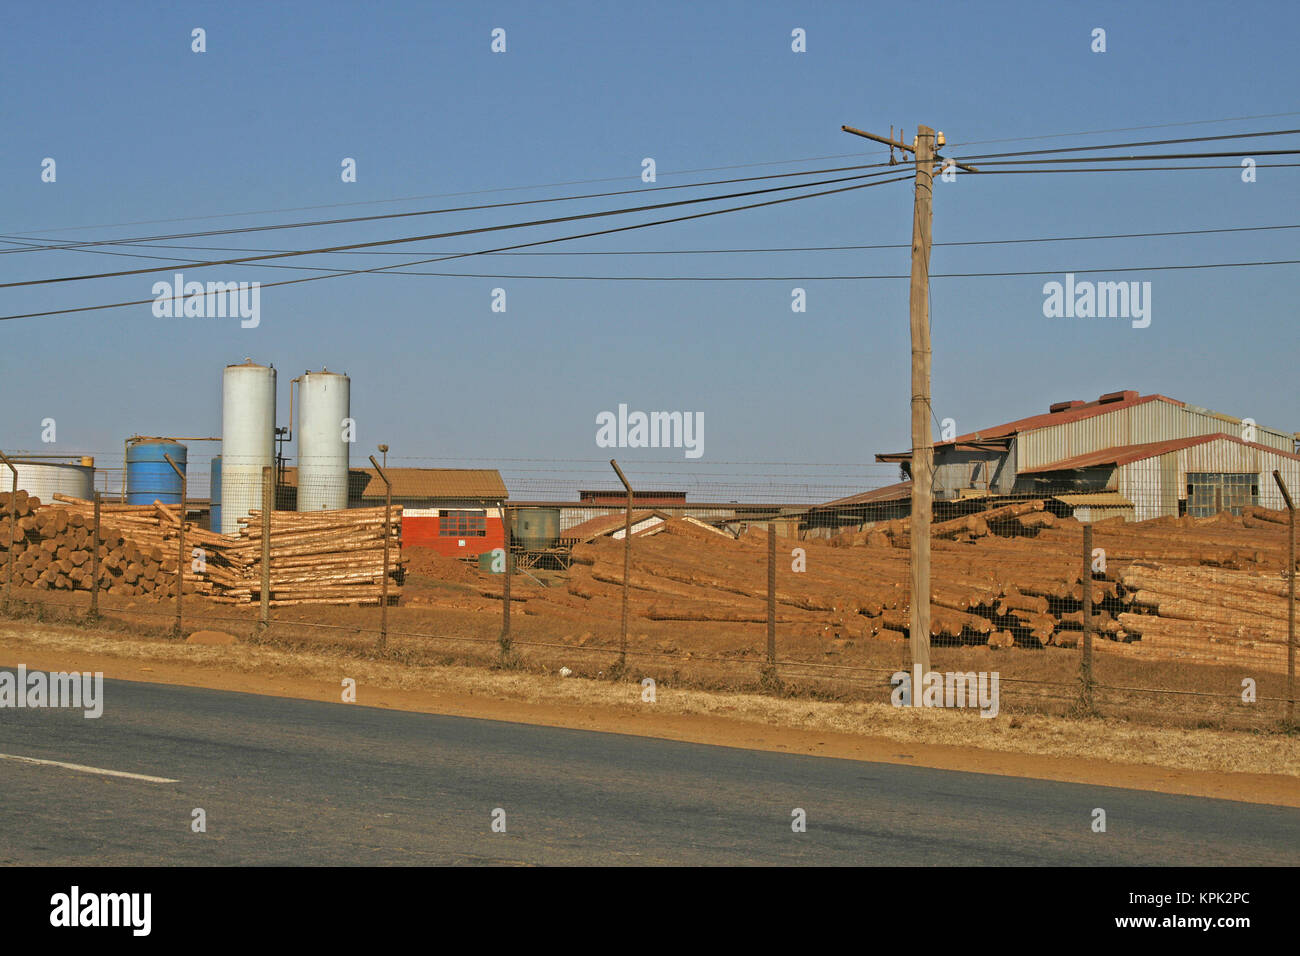 Timber at timber factory, Kingdom of Swaziland. - Stock Image